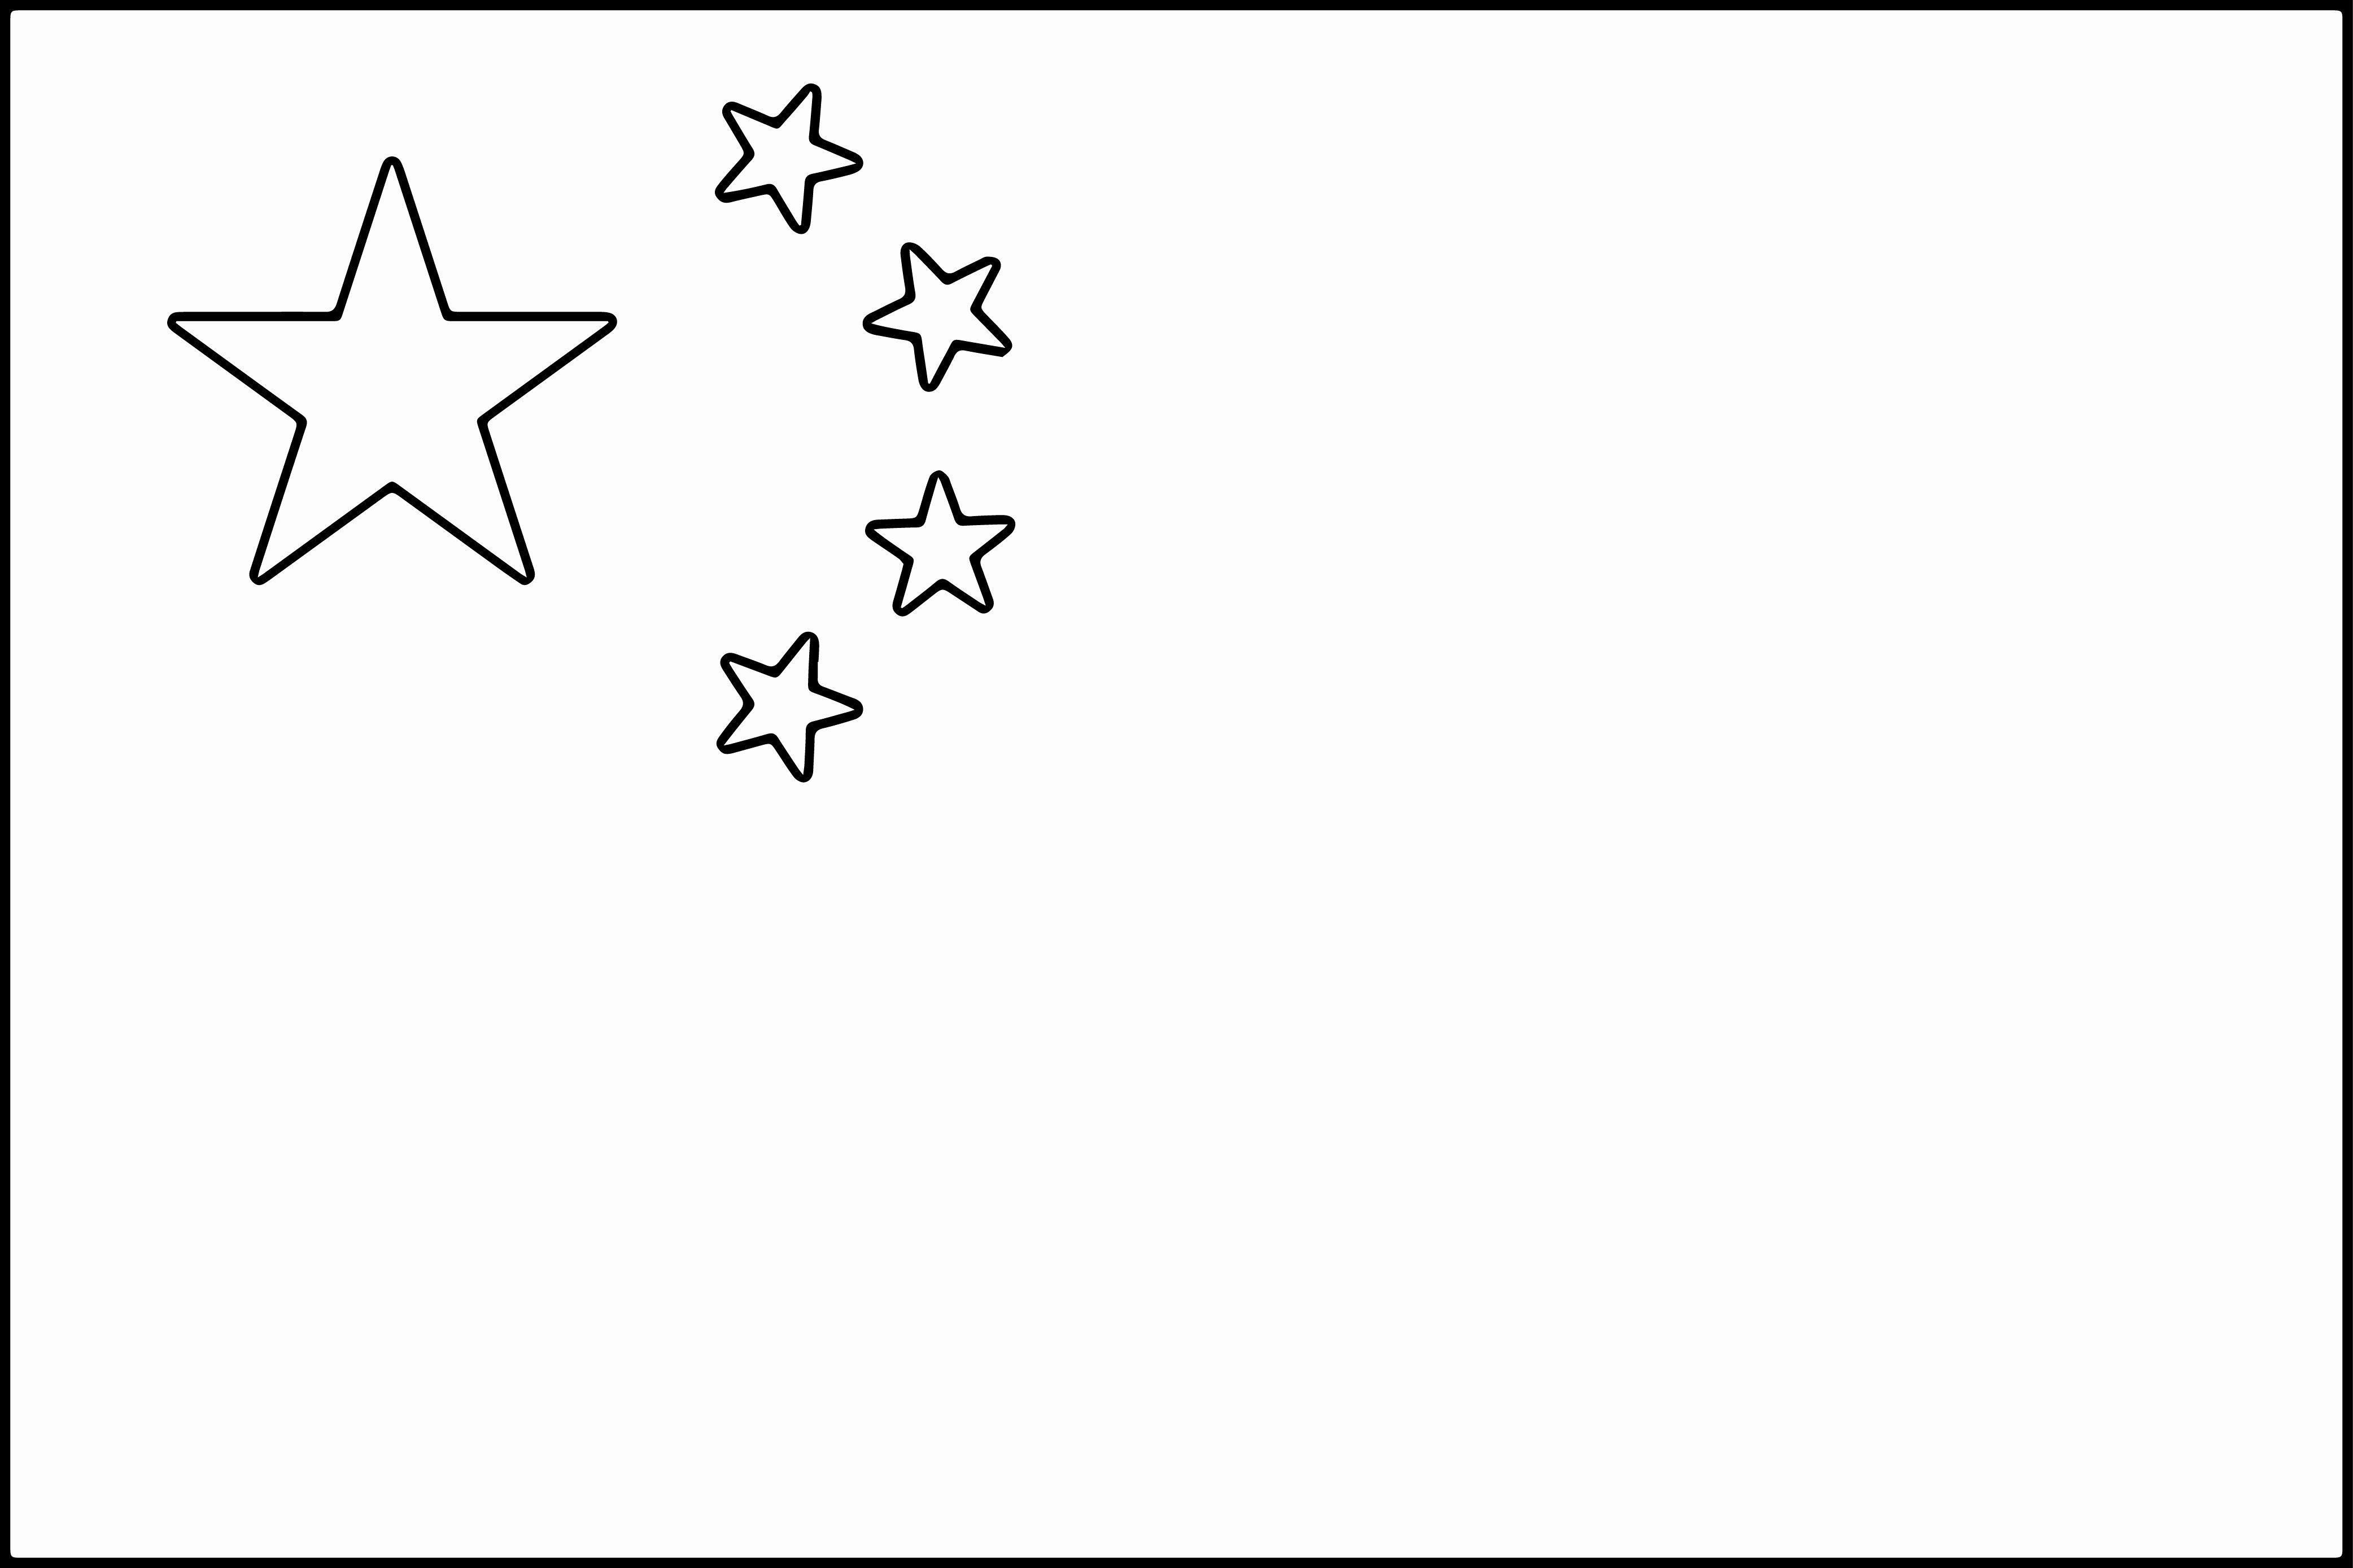 Chinese Flag Coloring Page Lovely China Flag Printable D3ba4c4acb3a A In 2020 Flag Coloring Pages China Flag Chinese Flag